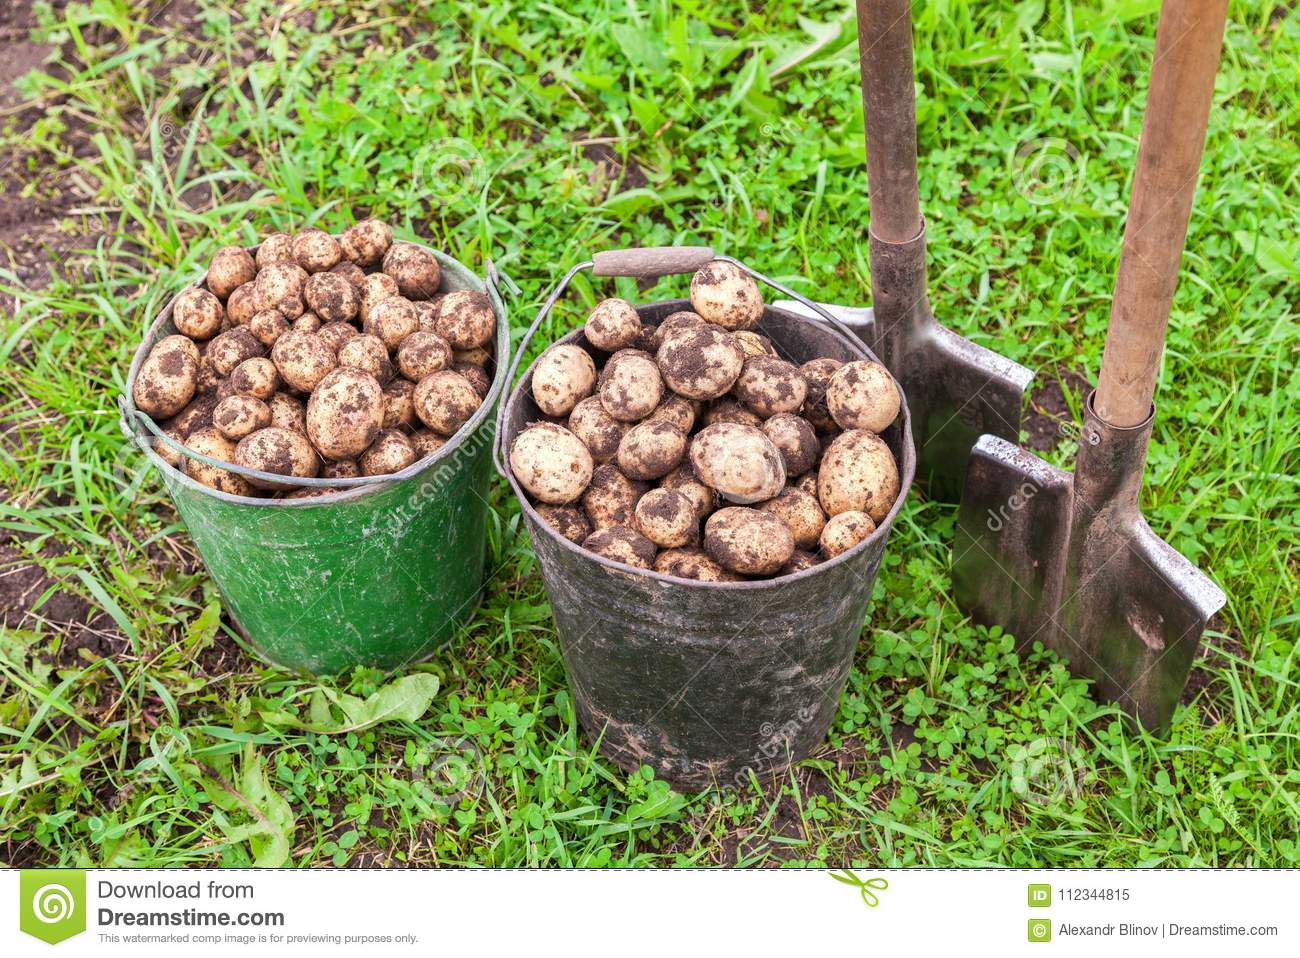 Freshly dug potatoes in metal buckets and shovels